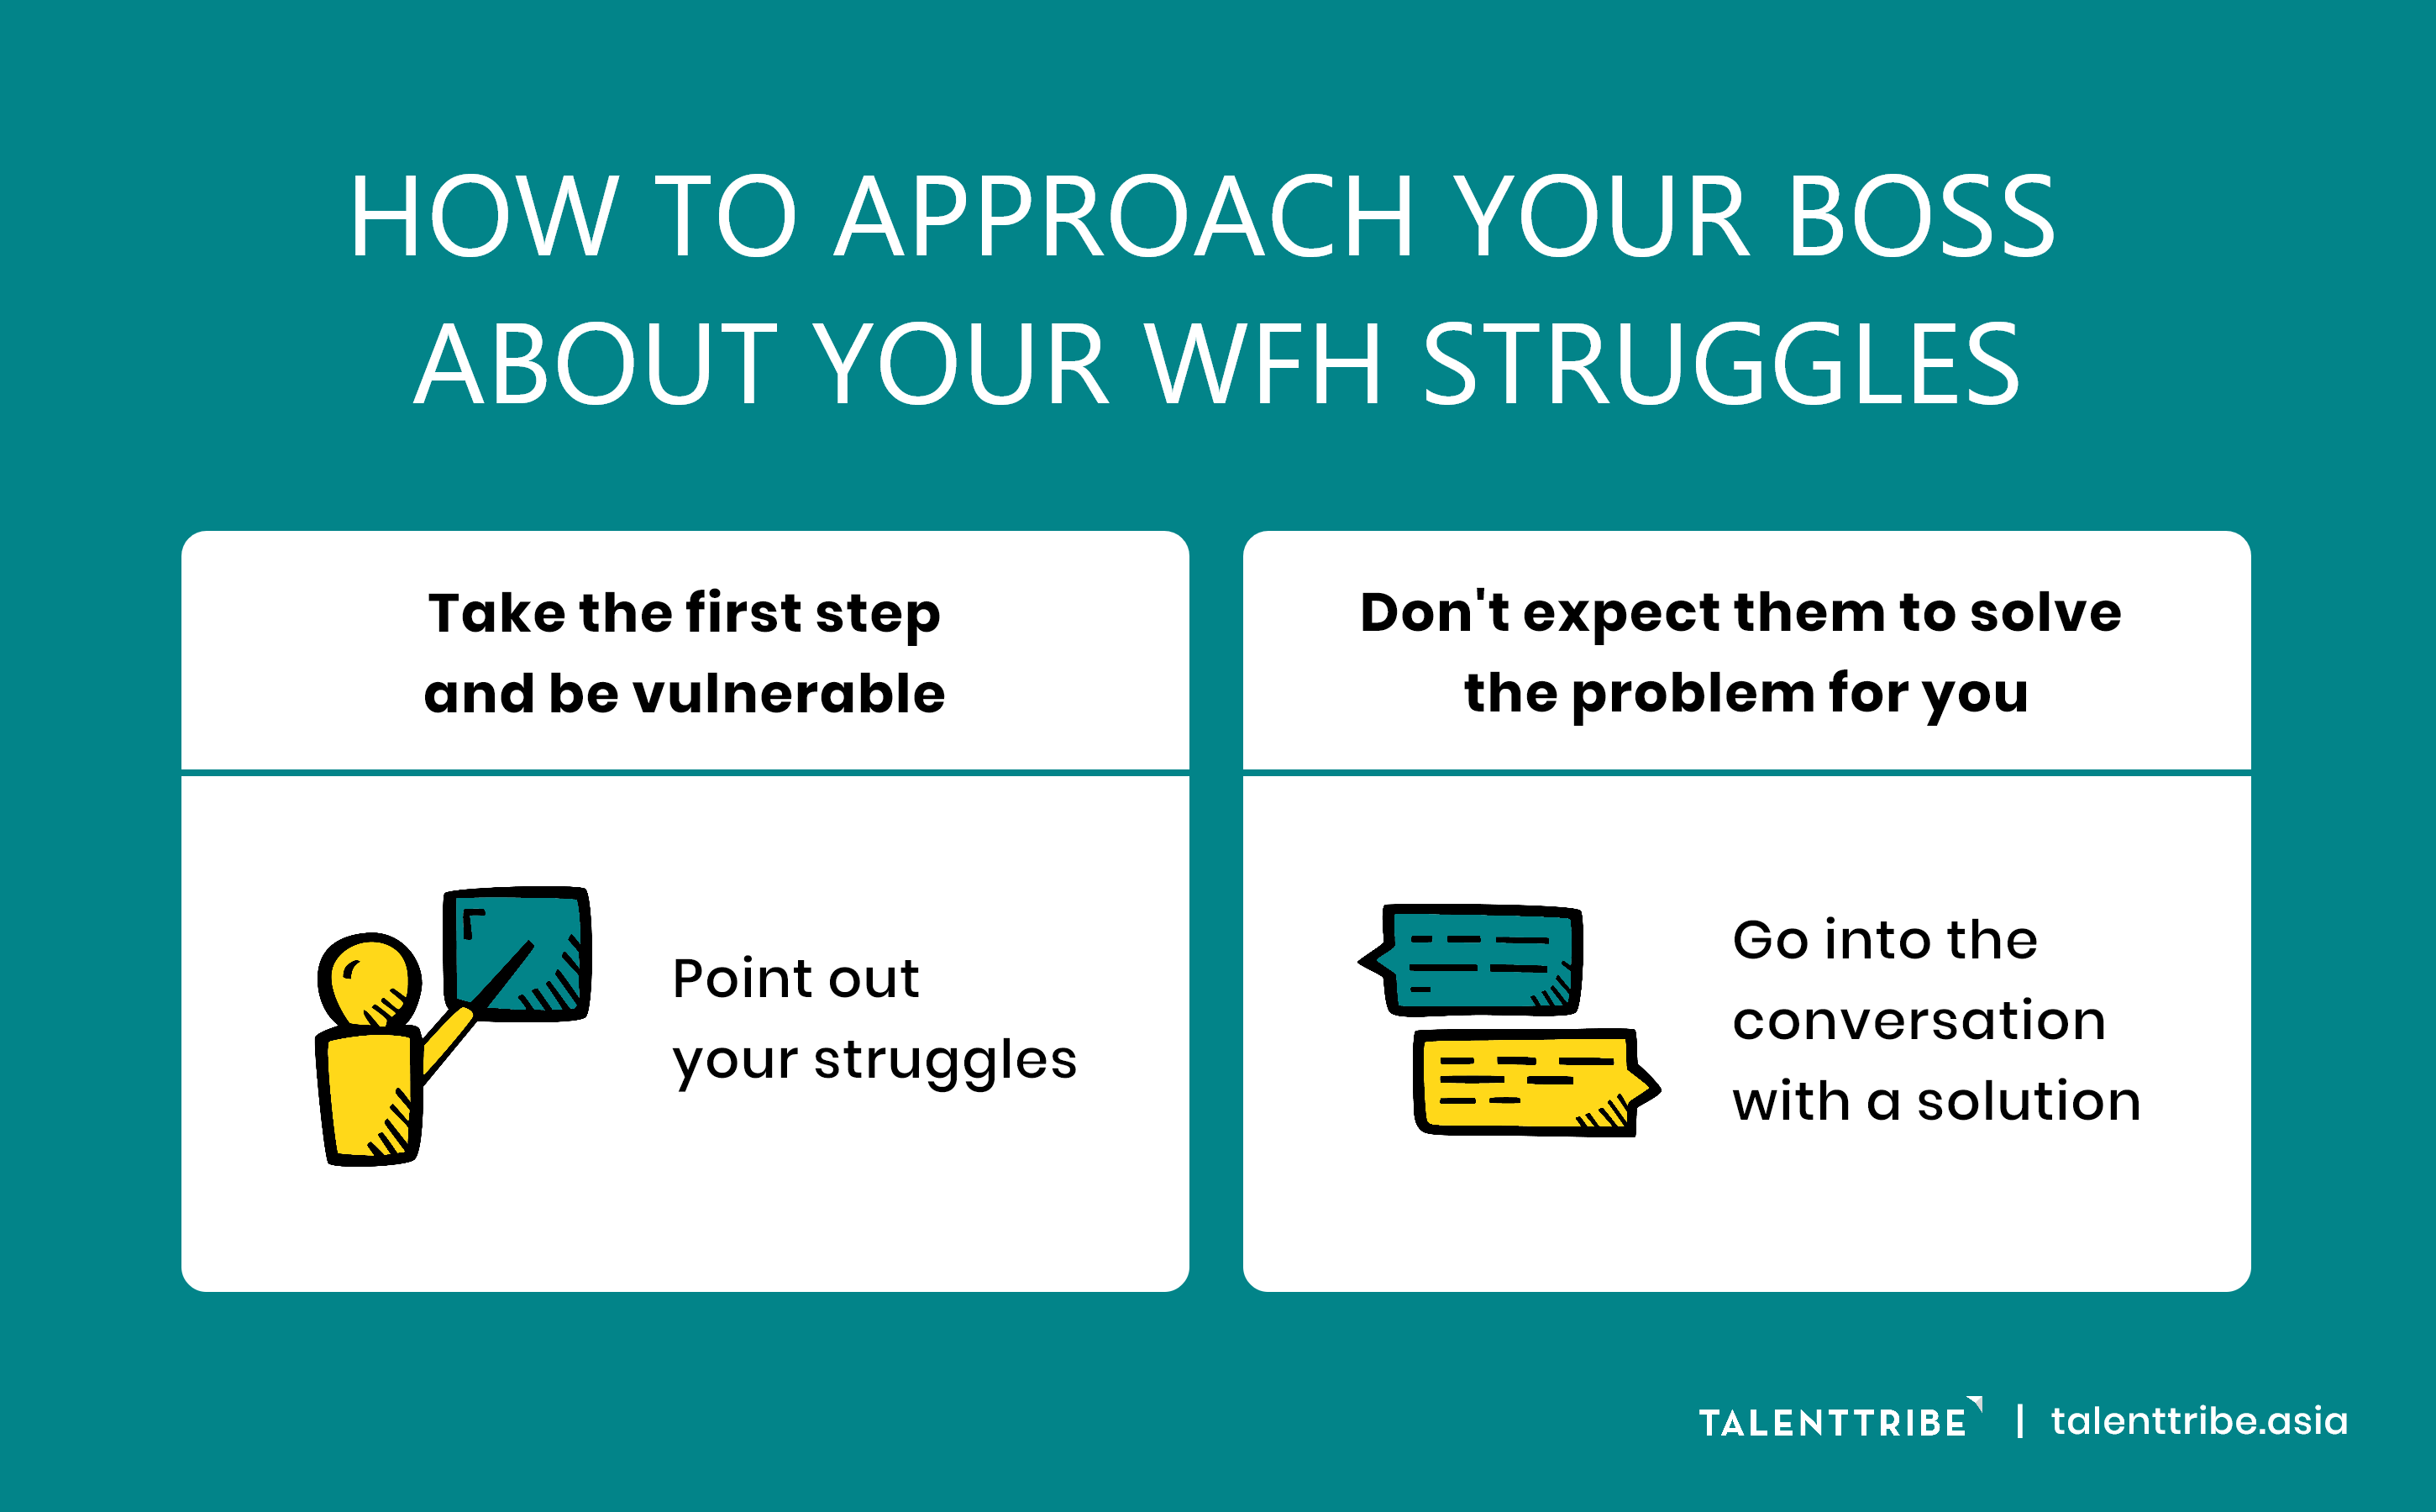 How To Approach Your Boss About Your Work From Home Struggles